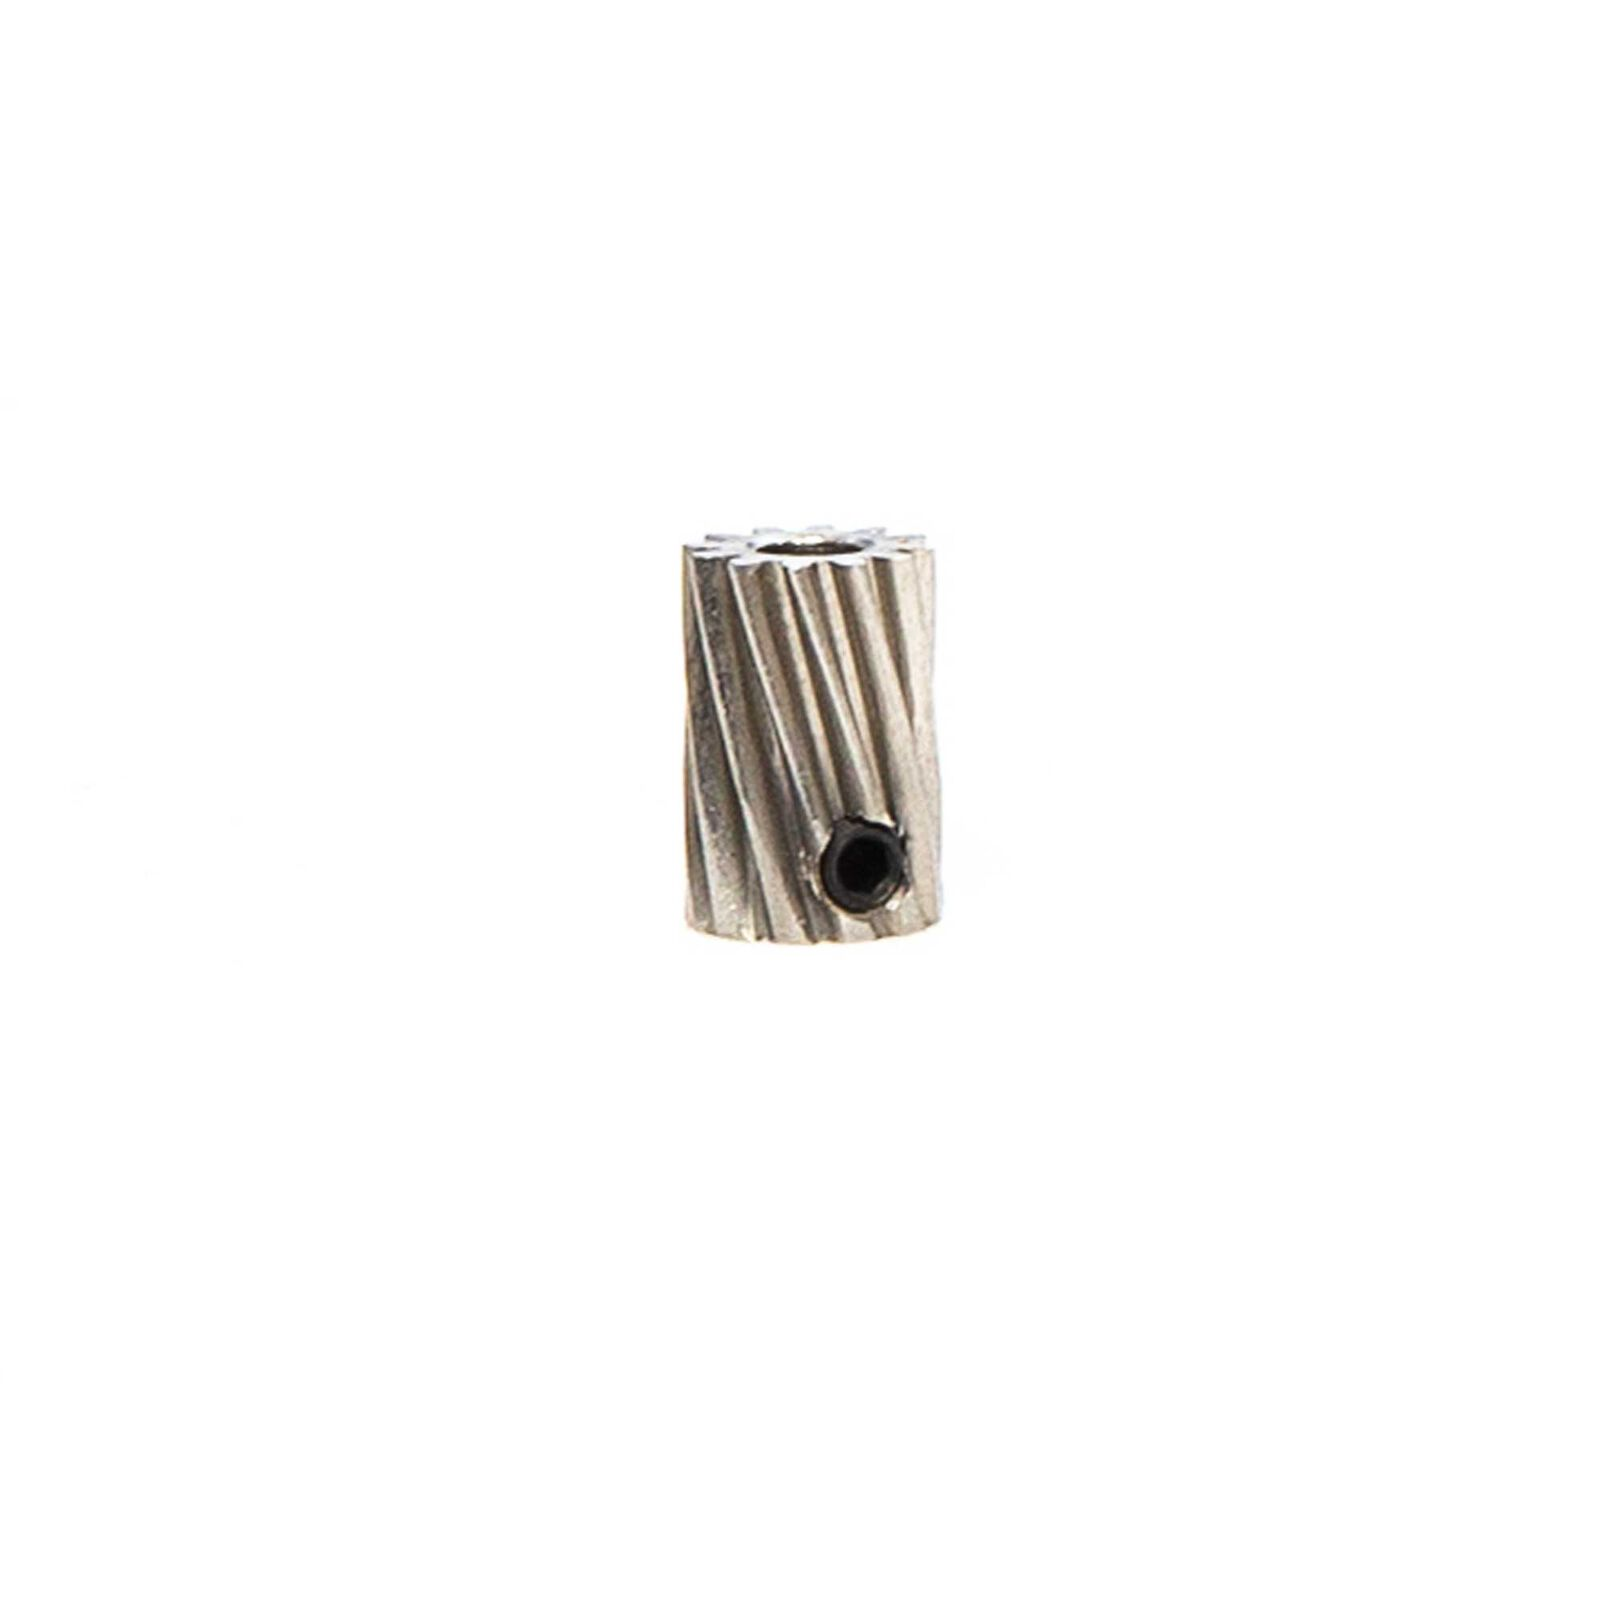 12T Helical Steel Pinion: 270, 300, 360, 450